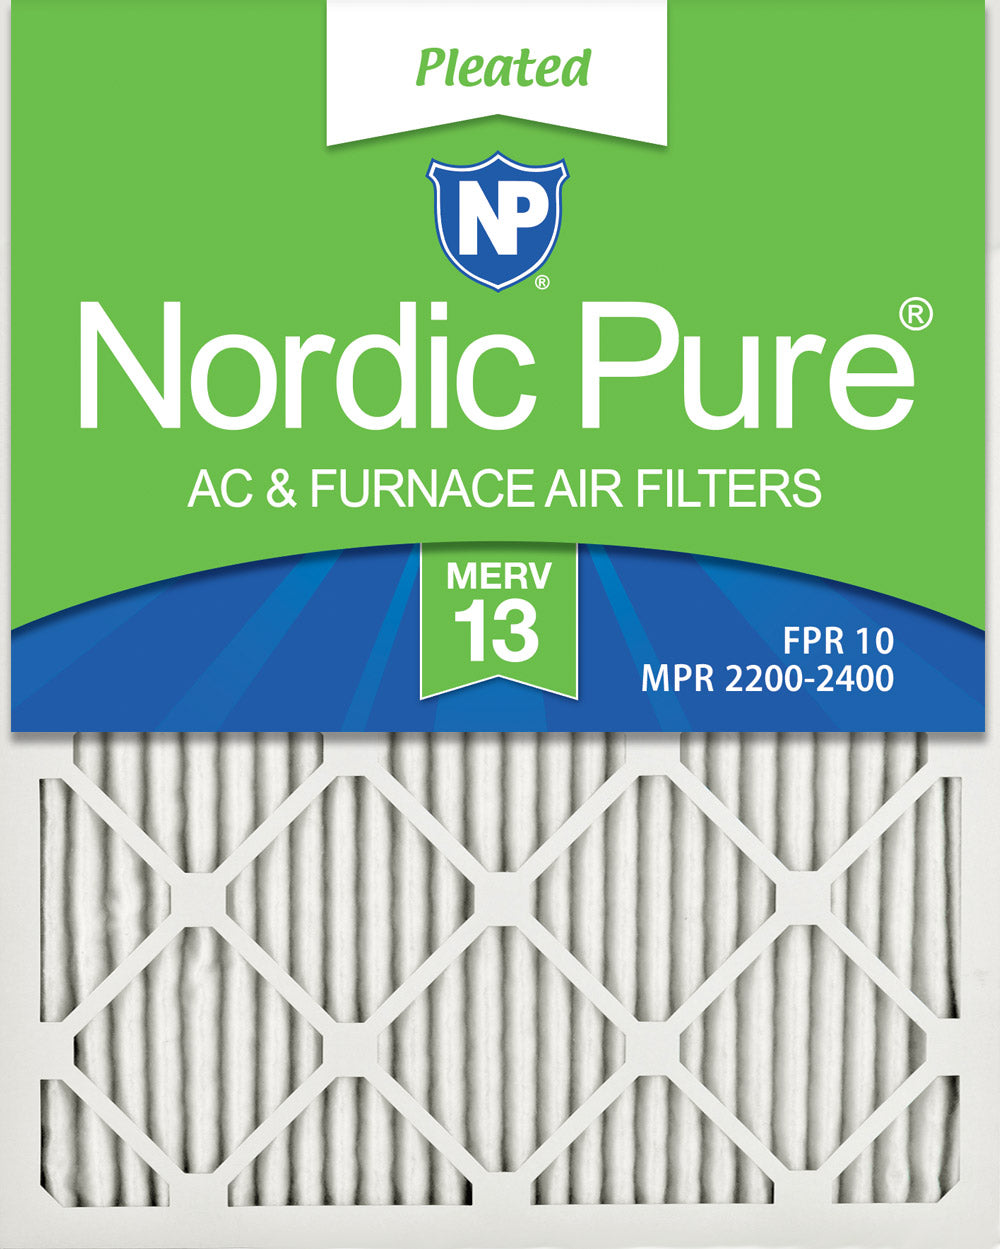 20x25x1 Pleated MERV 13 Air Filters 3 Pack